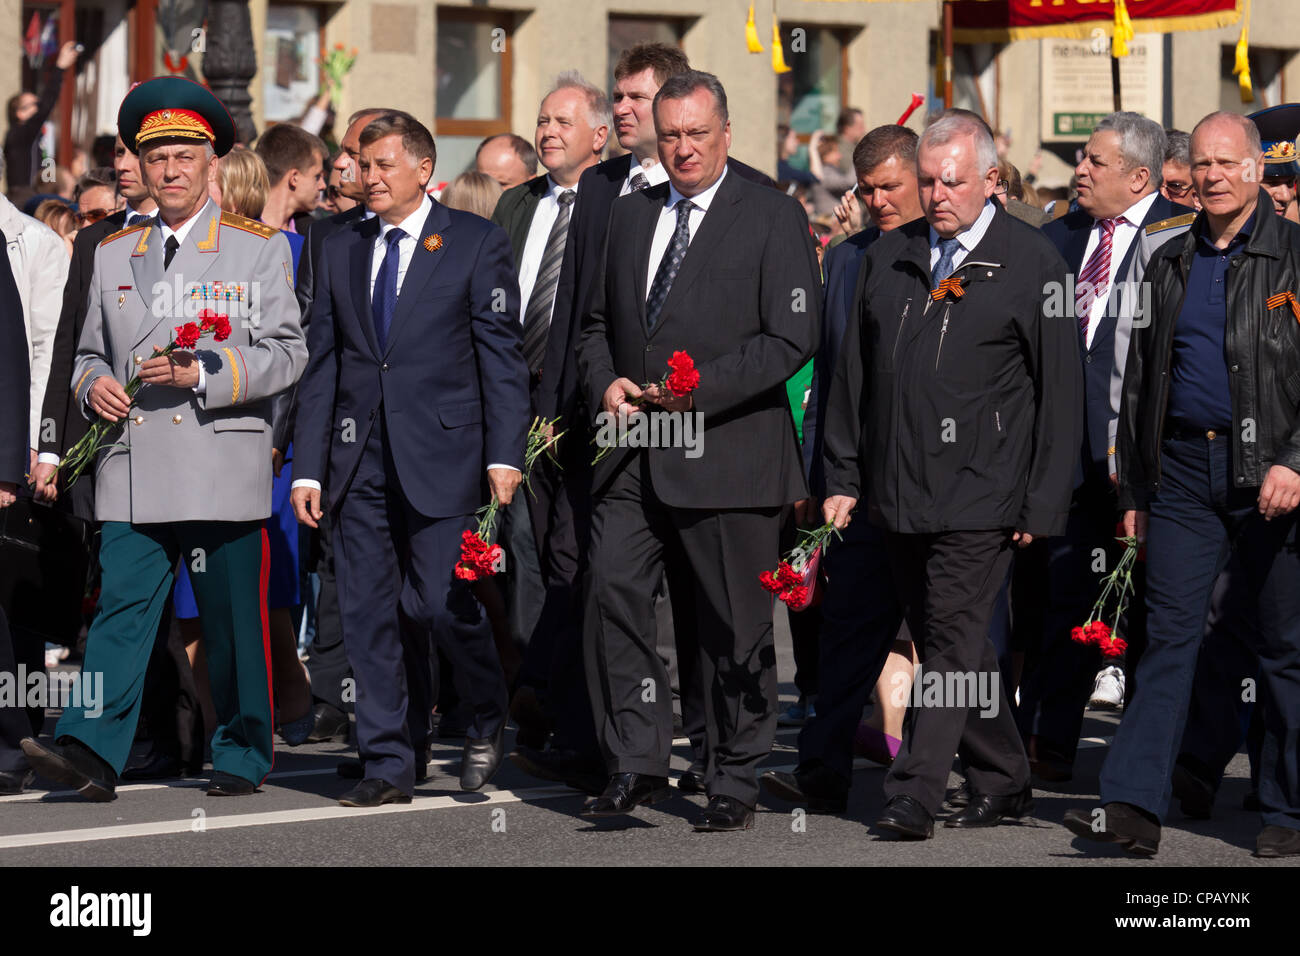 The parade of veterans of World War II on the Nevsky Prospect, St. Petersburg, Russia, May 9, 2012. The first line Stock Photo